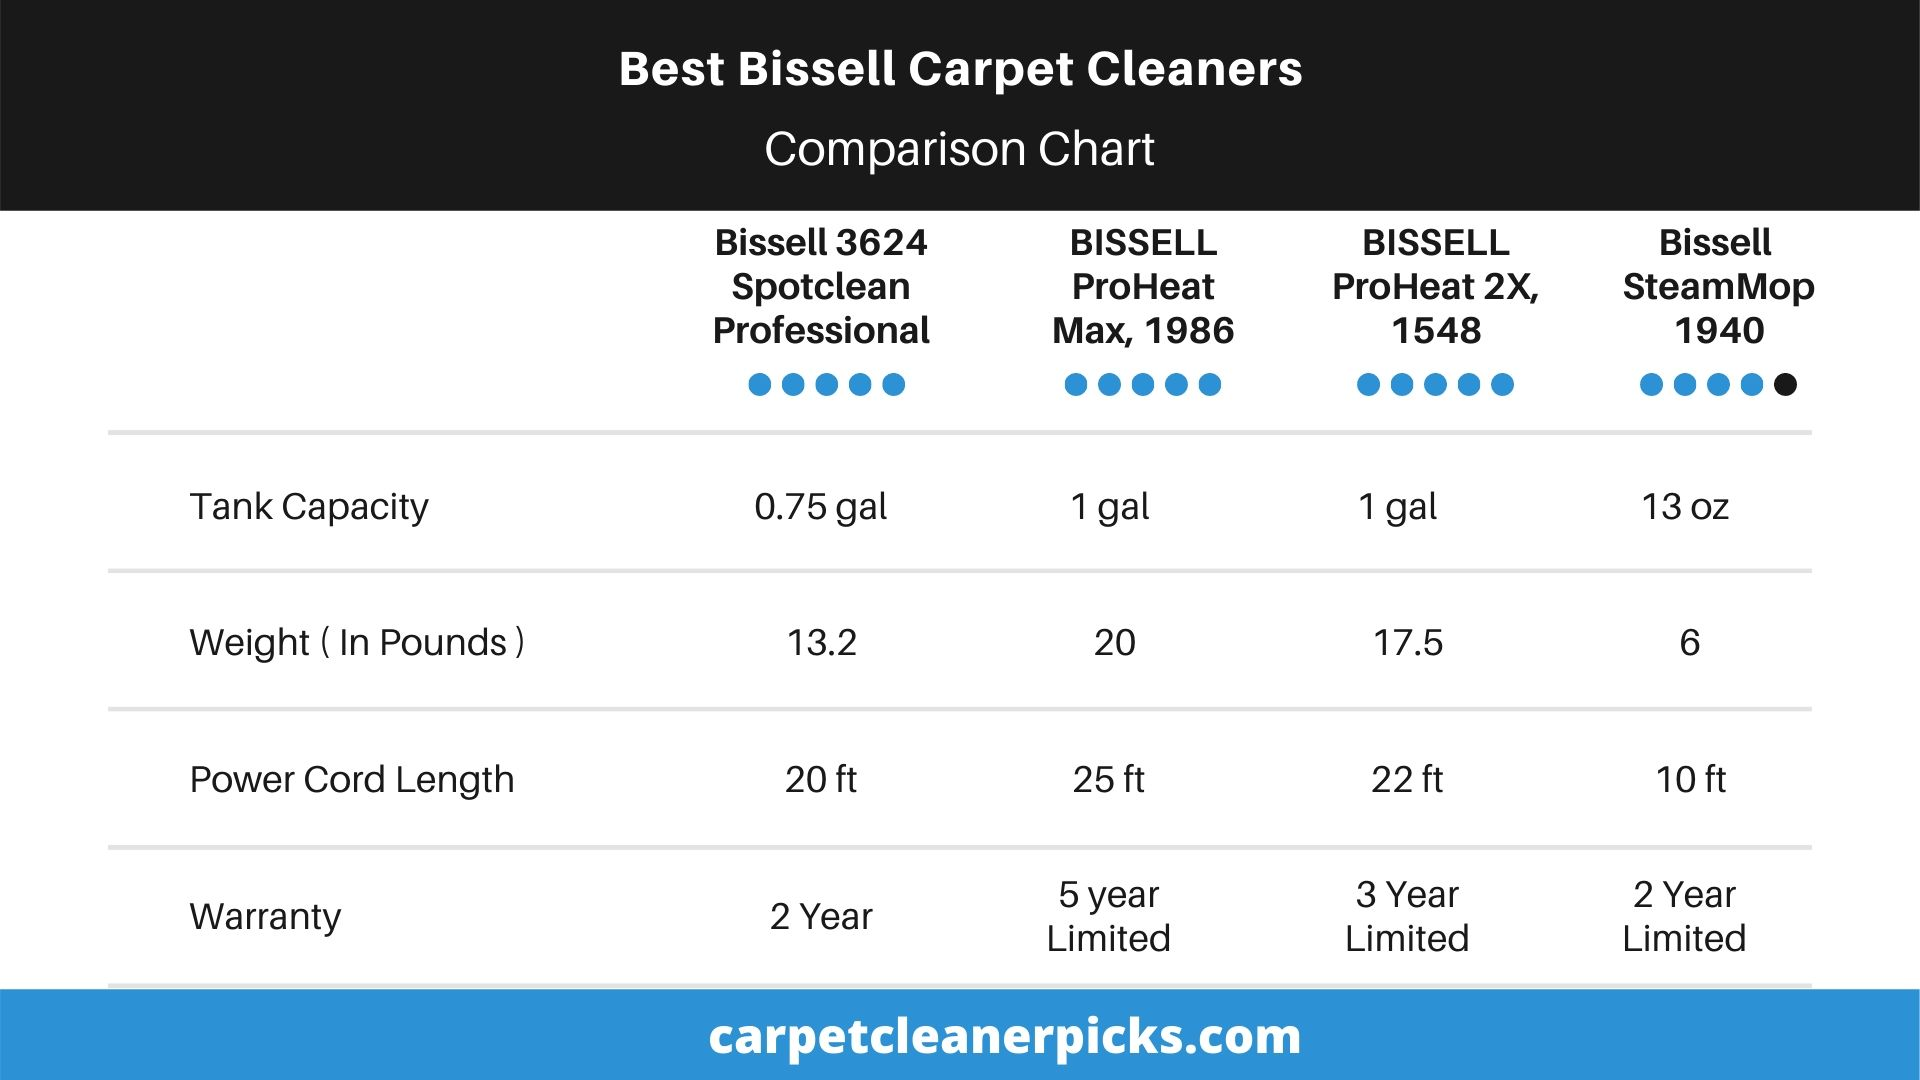 Bissell Carpet Cleaners Comparison Chart